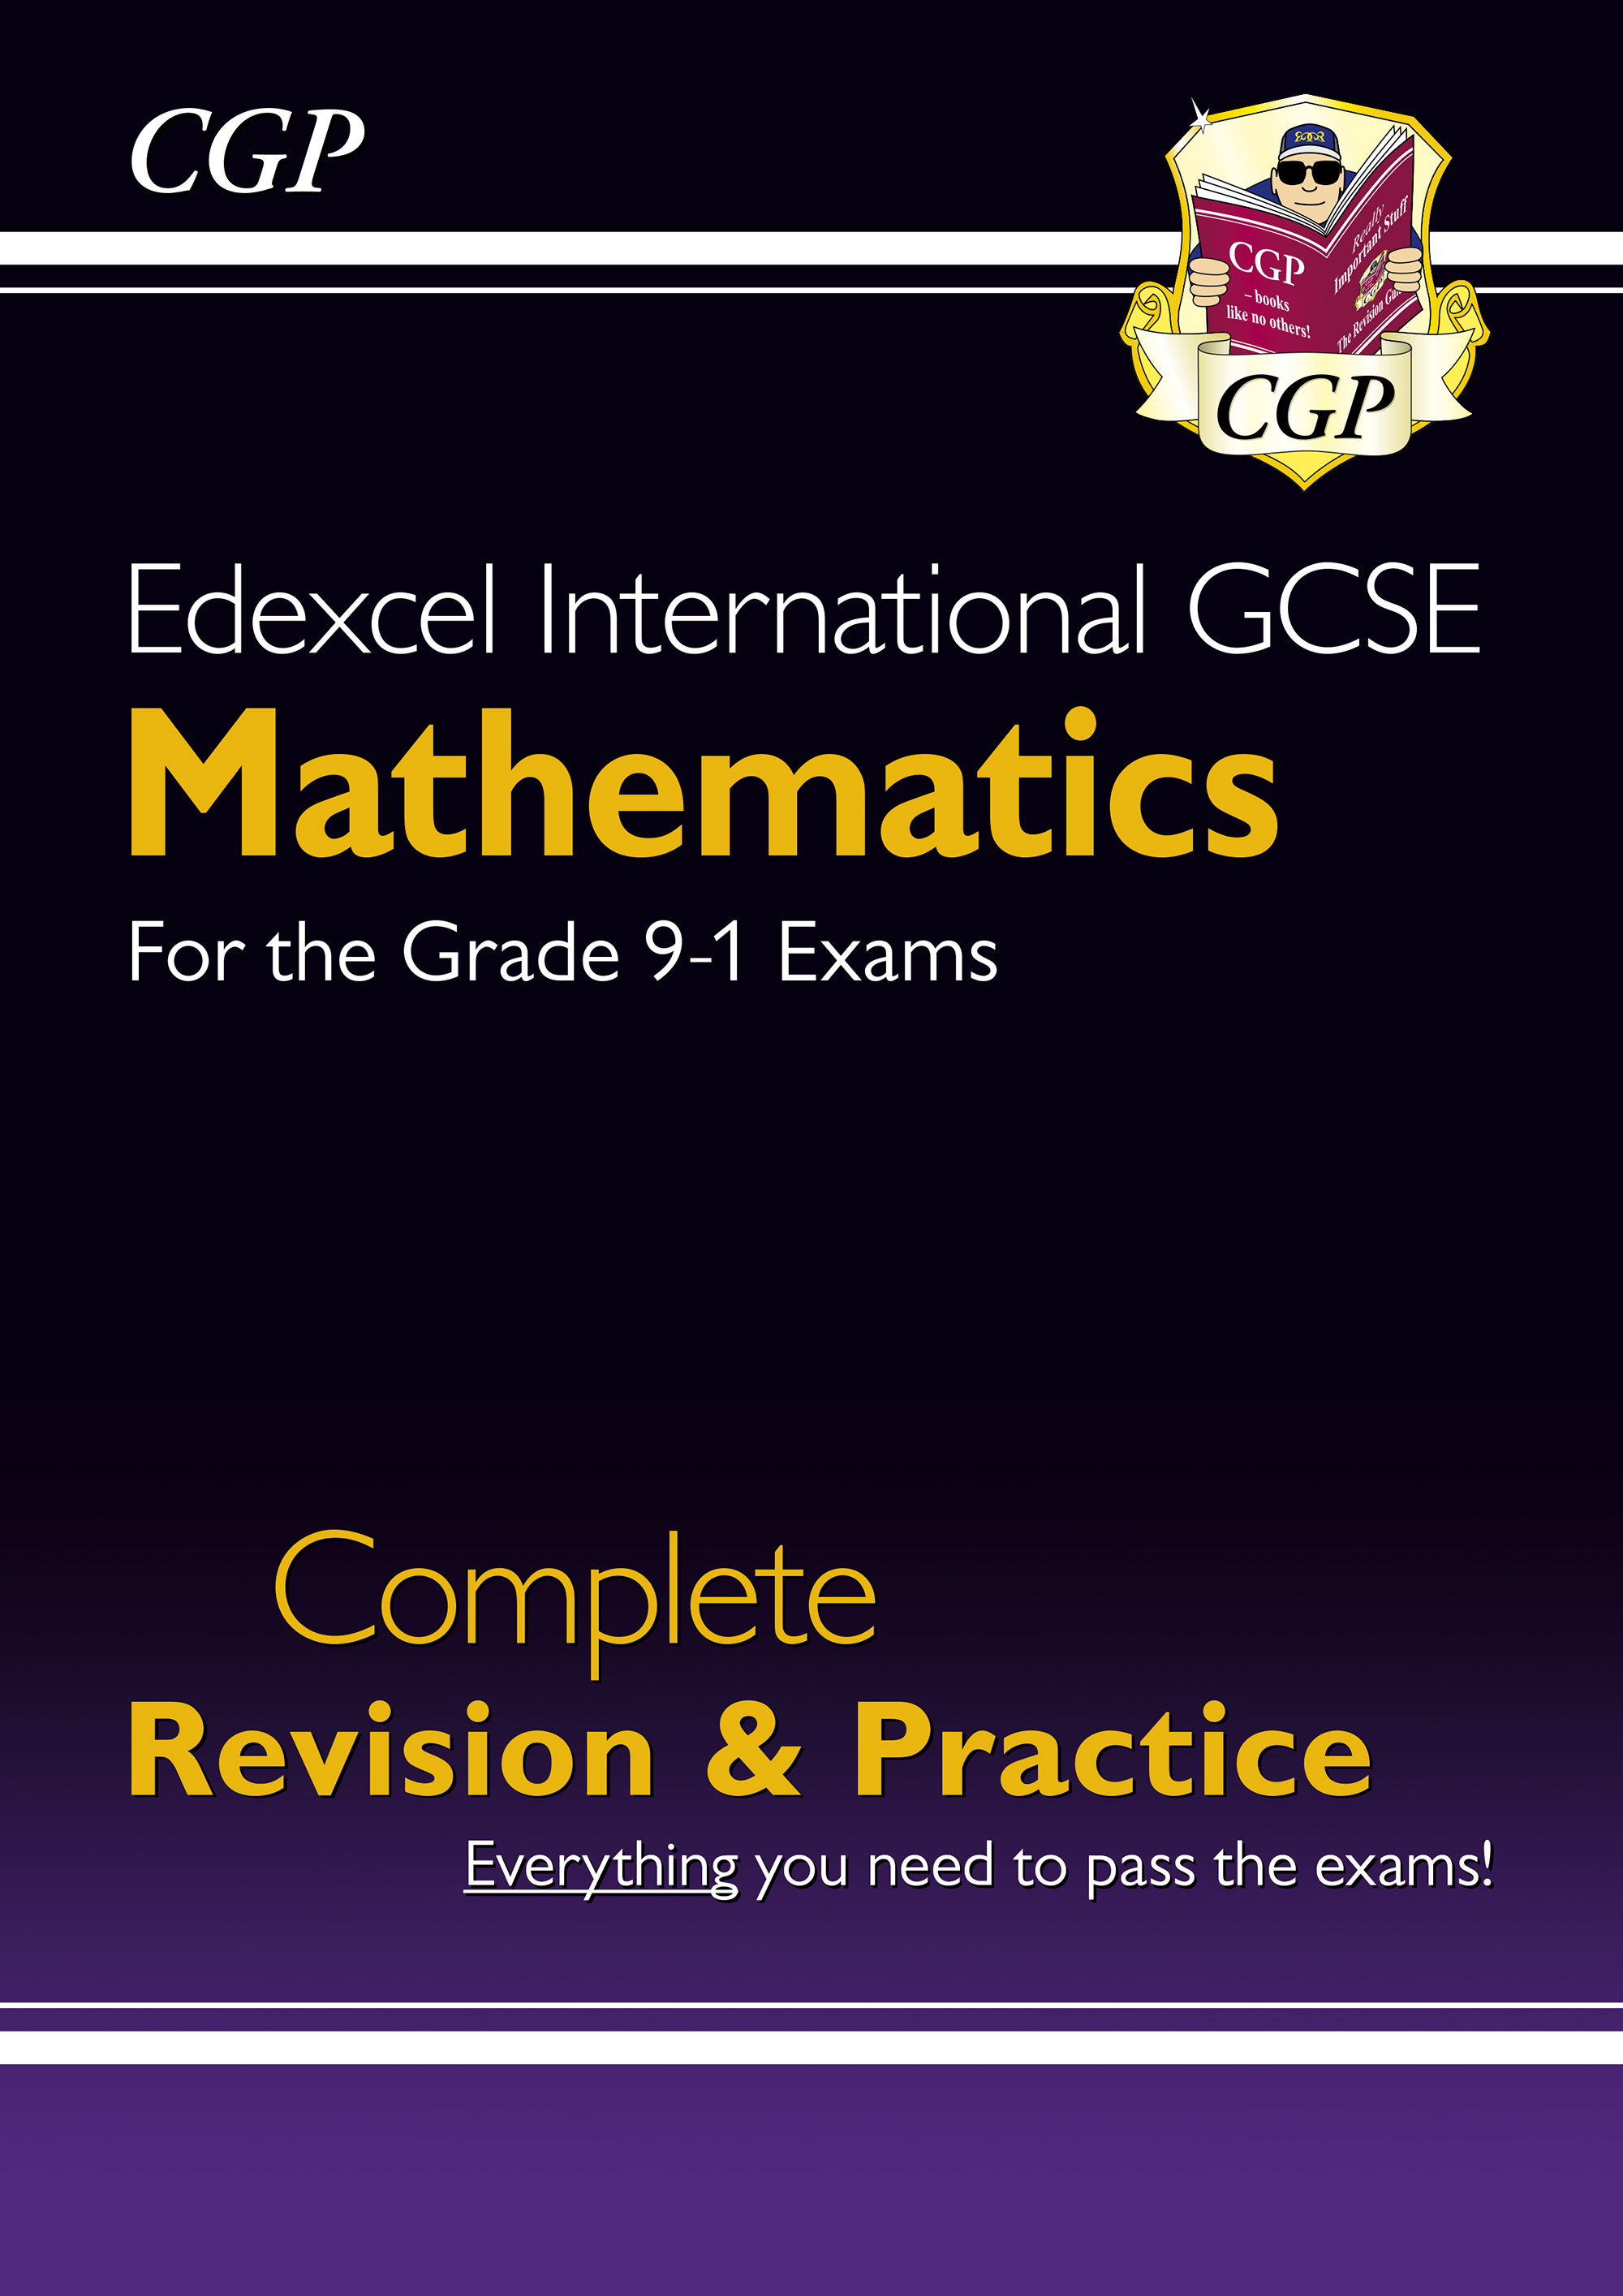 MESI41D - New Edexcel International GCSE Maths Complete Revision & Practice - Grade 9-1 Online Editi